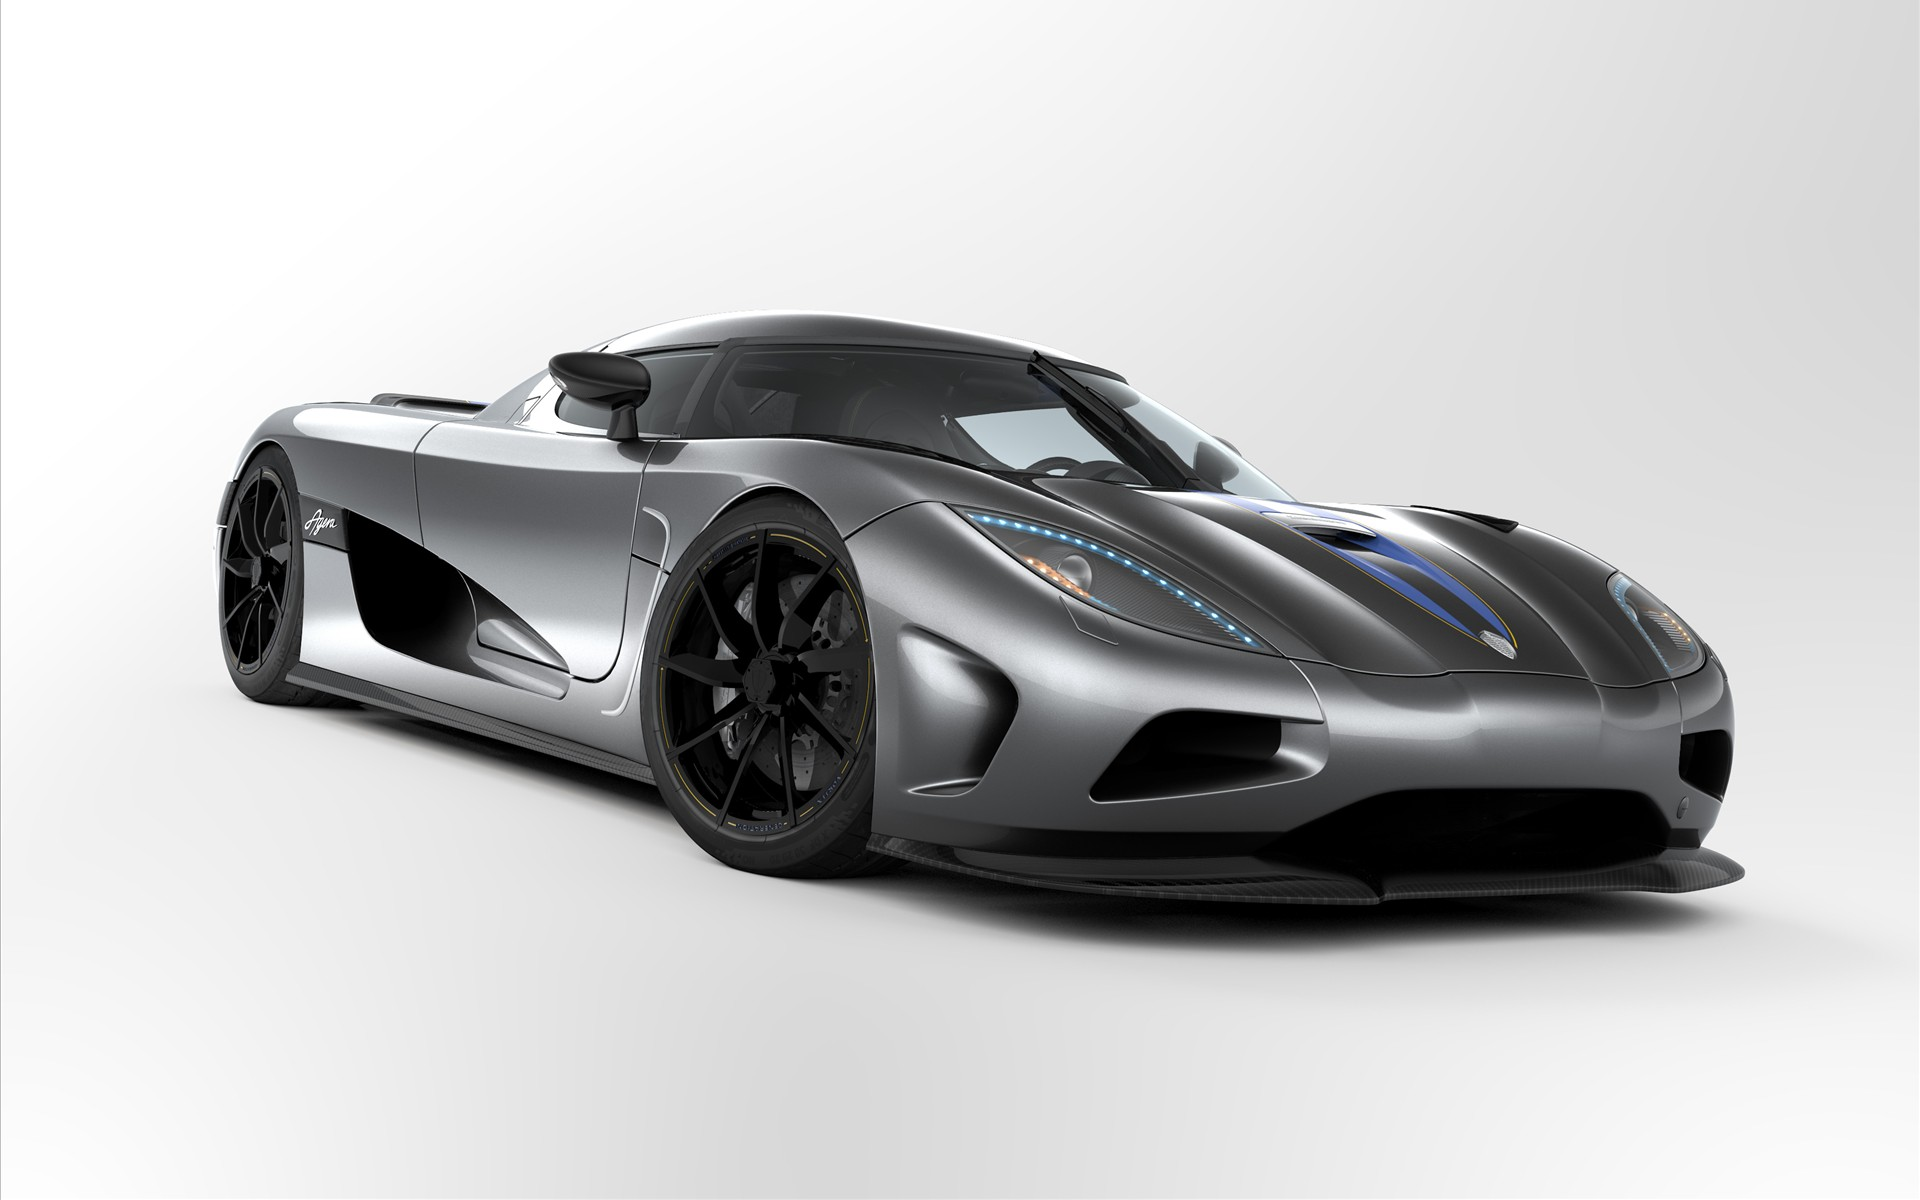 2011 Koenigsegg Agera Wallpapers HD Wallpapers 1920x1200